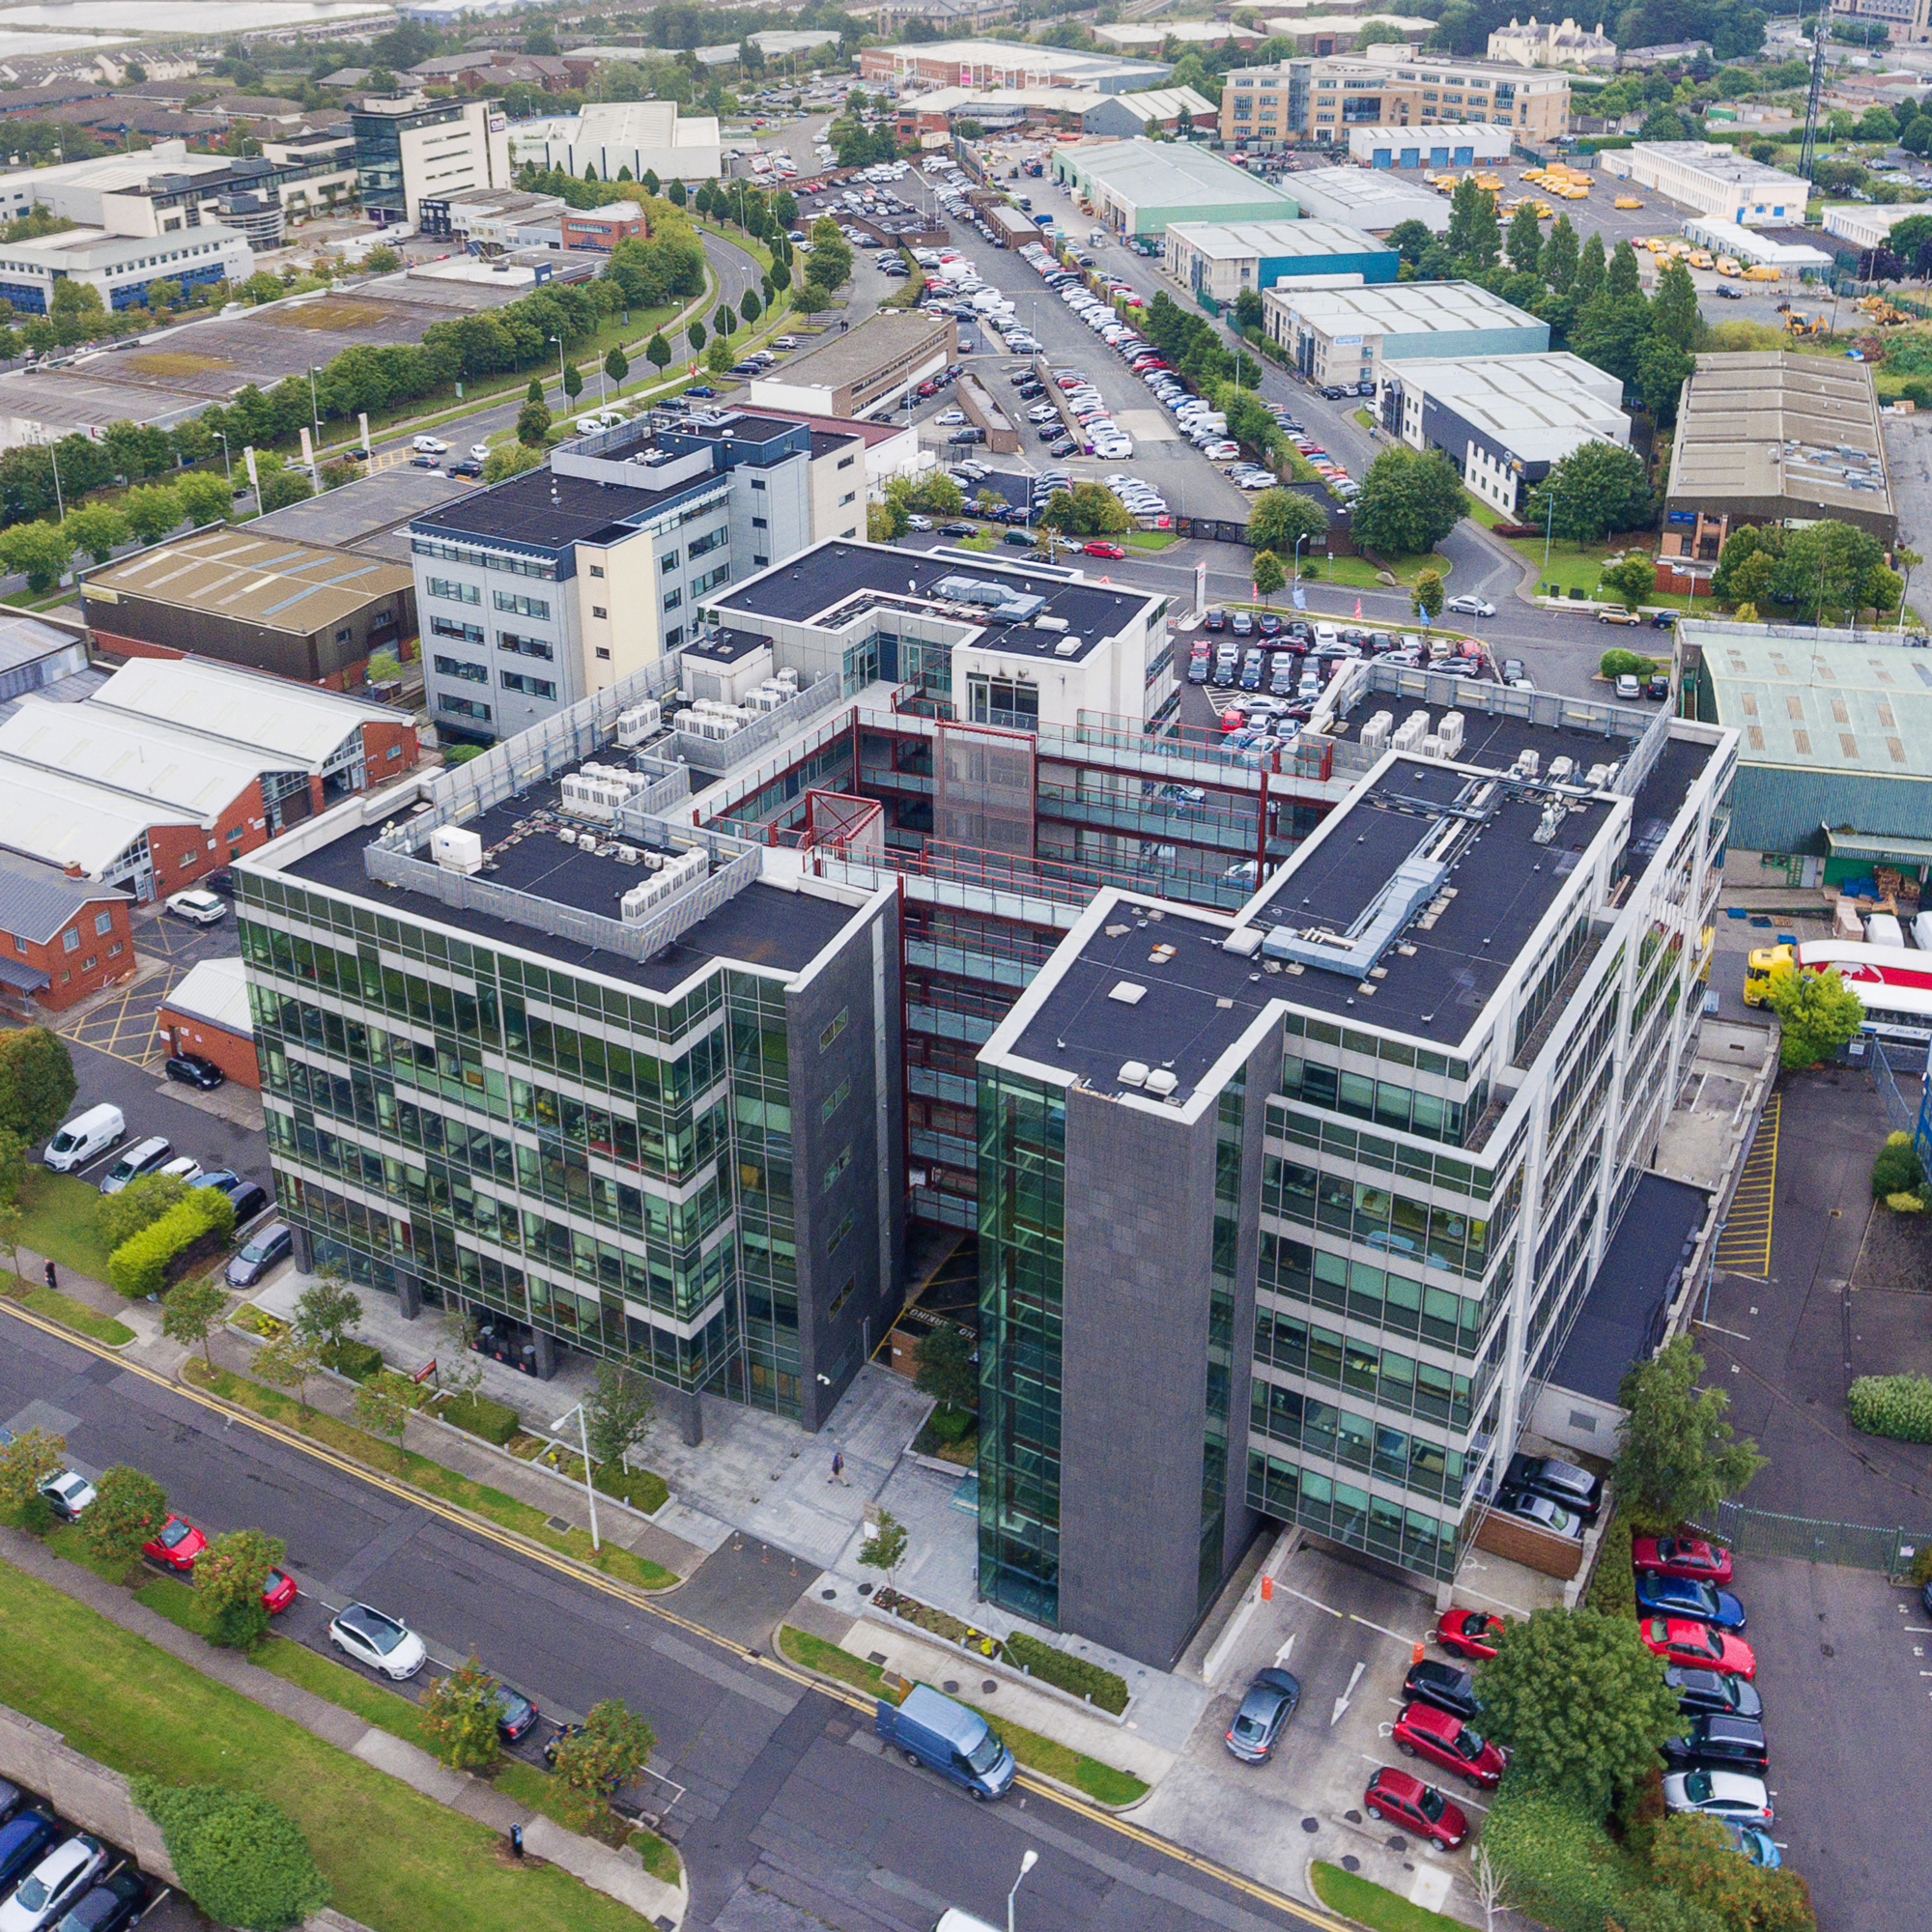 - We work with investment partners in London and Dublin. We bring knowledge and expertise with our development opportunities across commercial, retail and residential sectors delivering value for individual investors, owner-occupiers and build to rent investors.We work with leading international brands and recognised tenants to provide long term income streams through our commercial and retail investment opportunities.